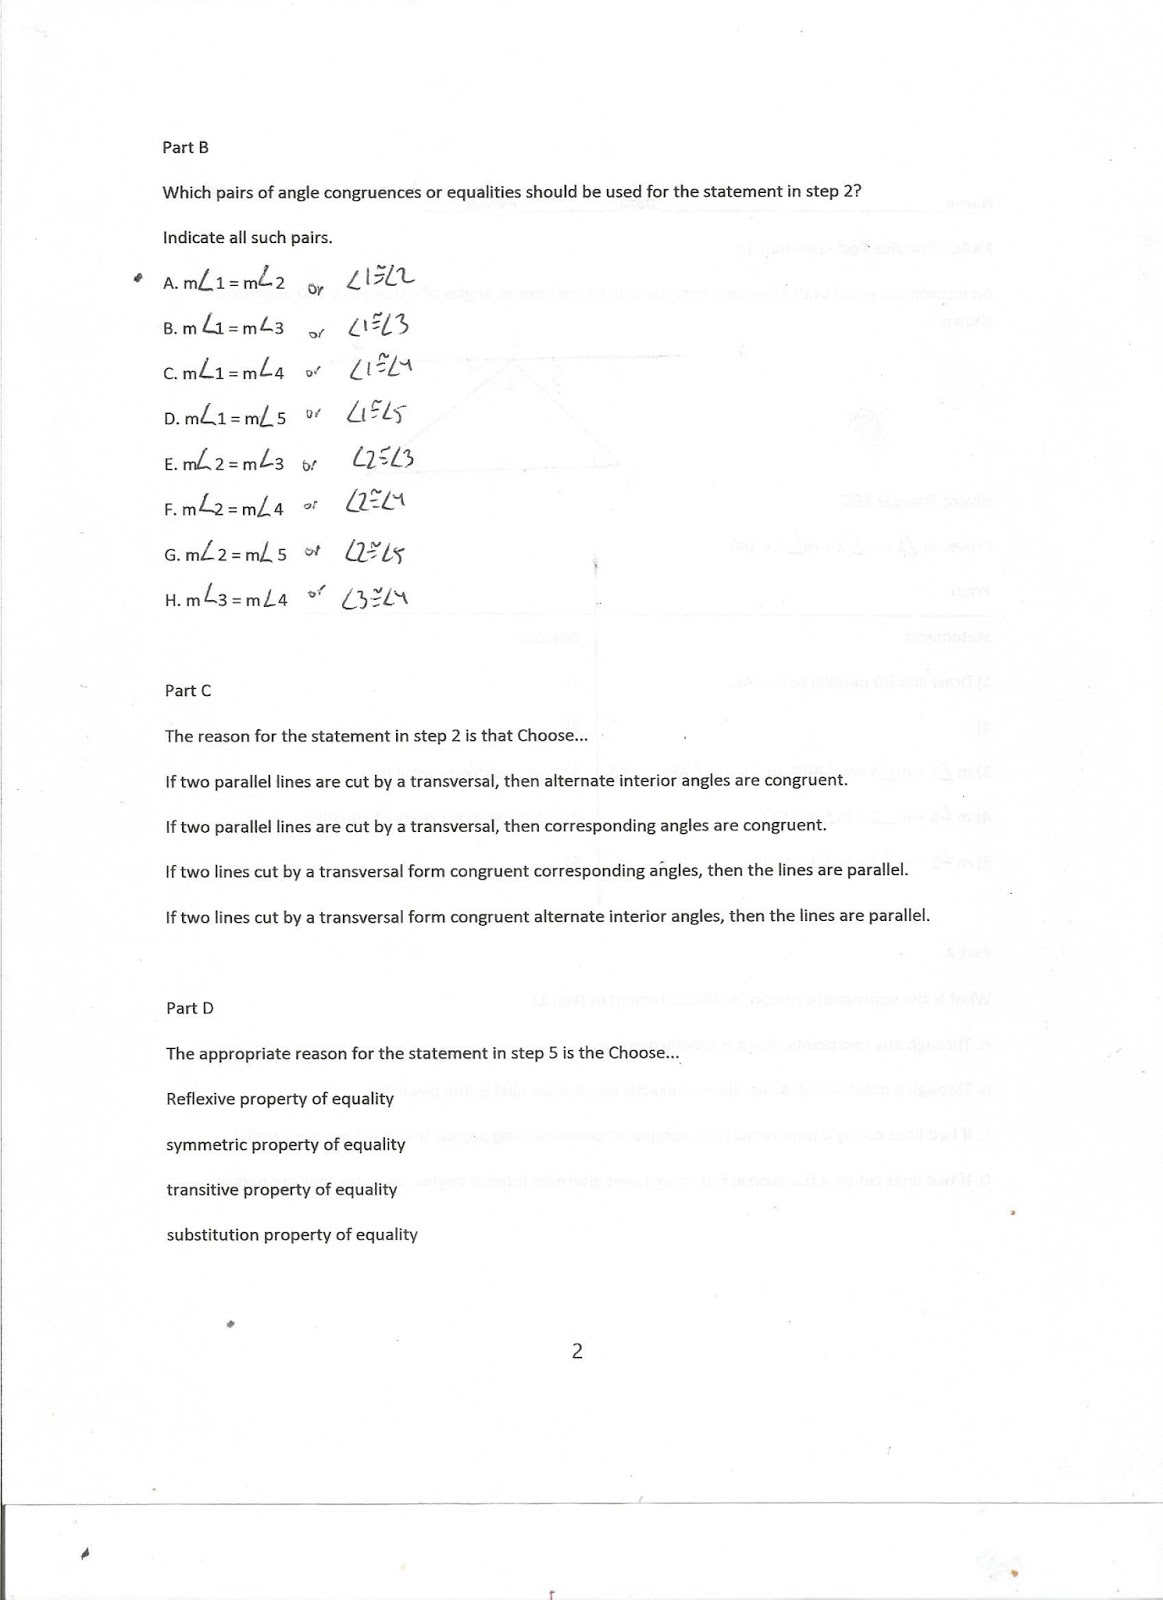 Geometry, Common Core Style: PARCC Practice Test Question 34 (Day 177)